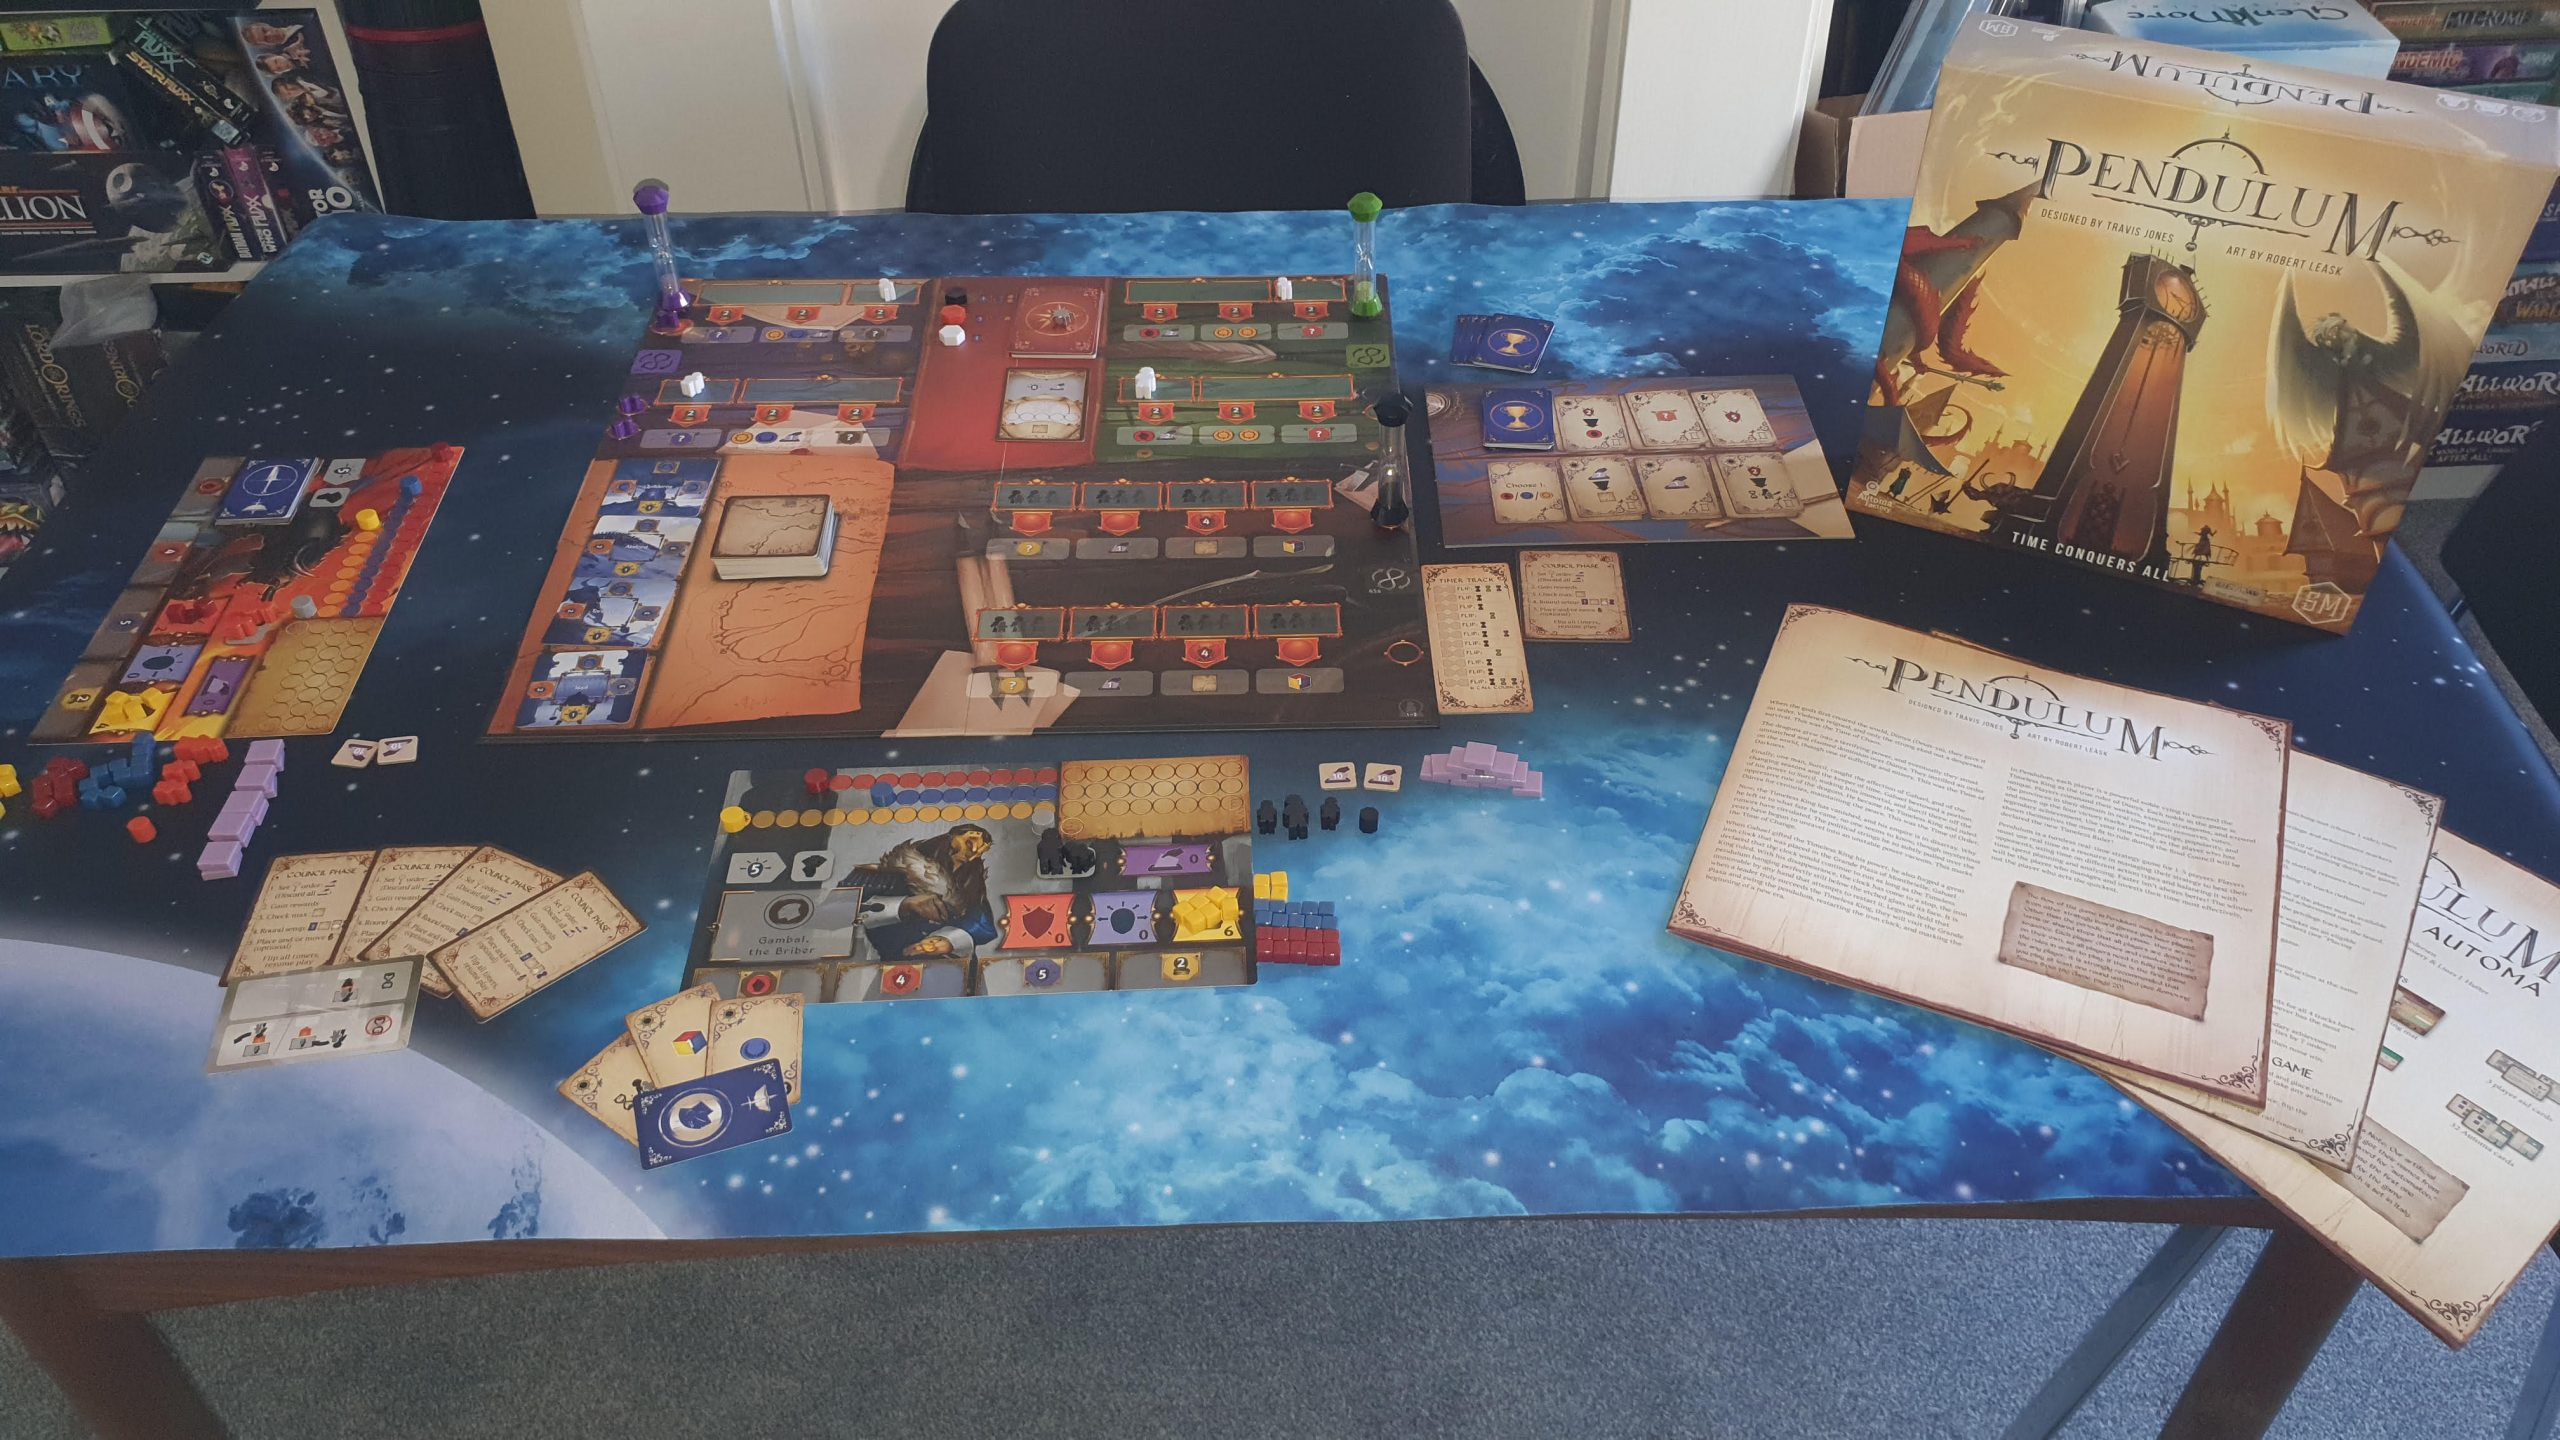 Pendulum Board Game by Stonemaier Games